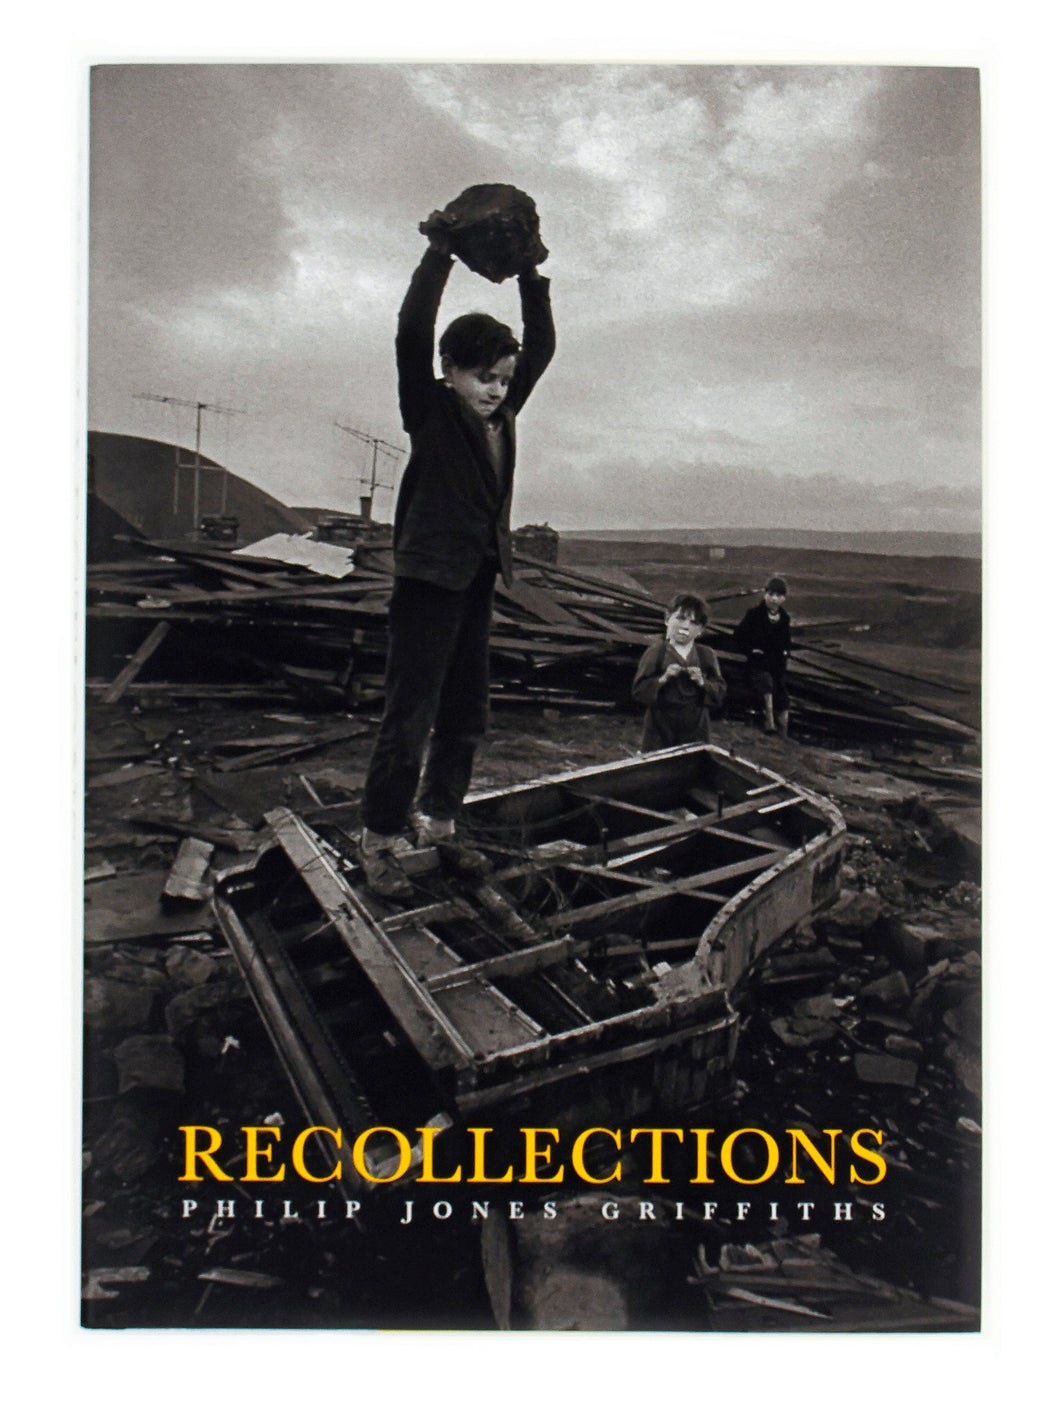 RECOLLECTIONS by Philip Jones Griffiths